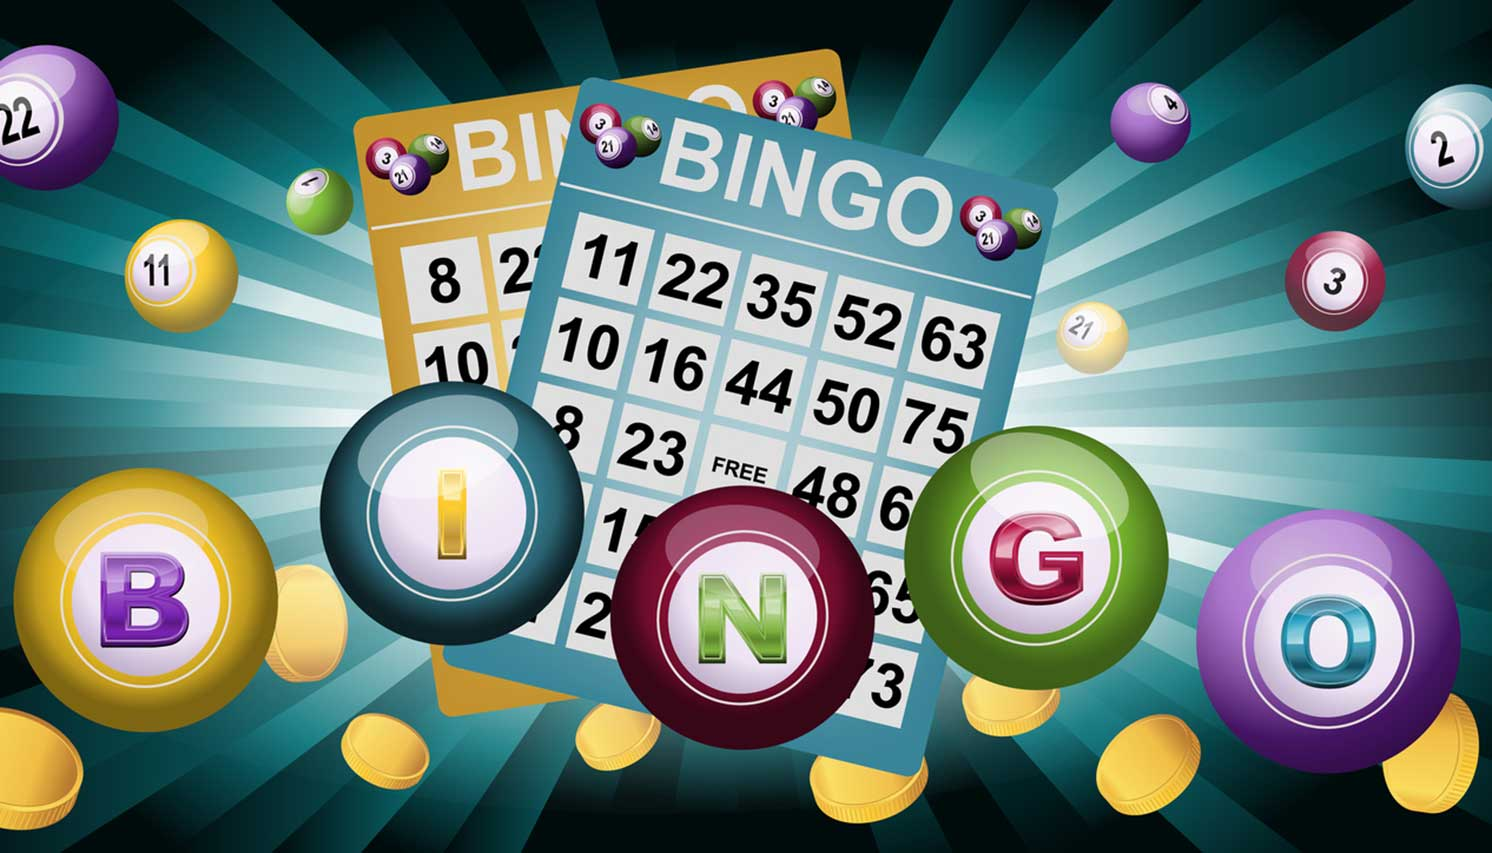 Use These Bingo Sites to Make Money Online